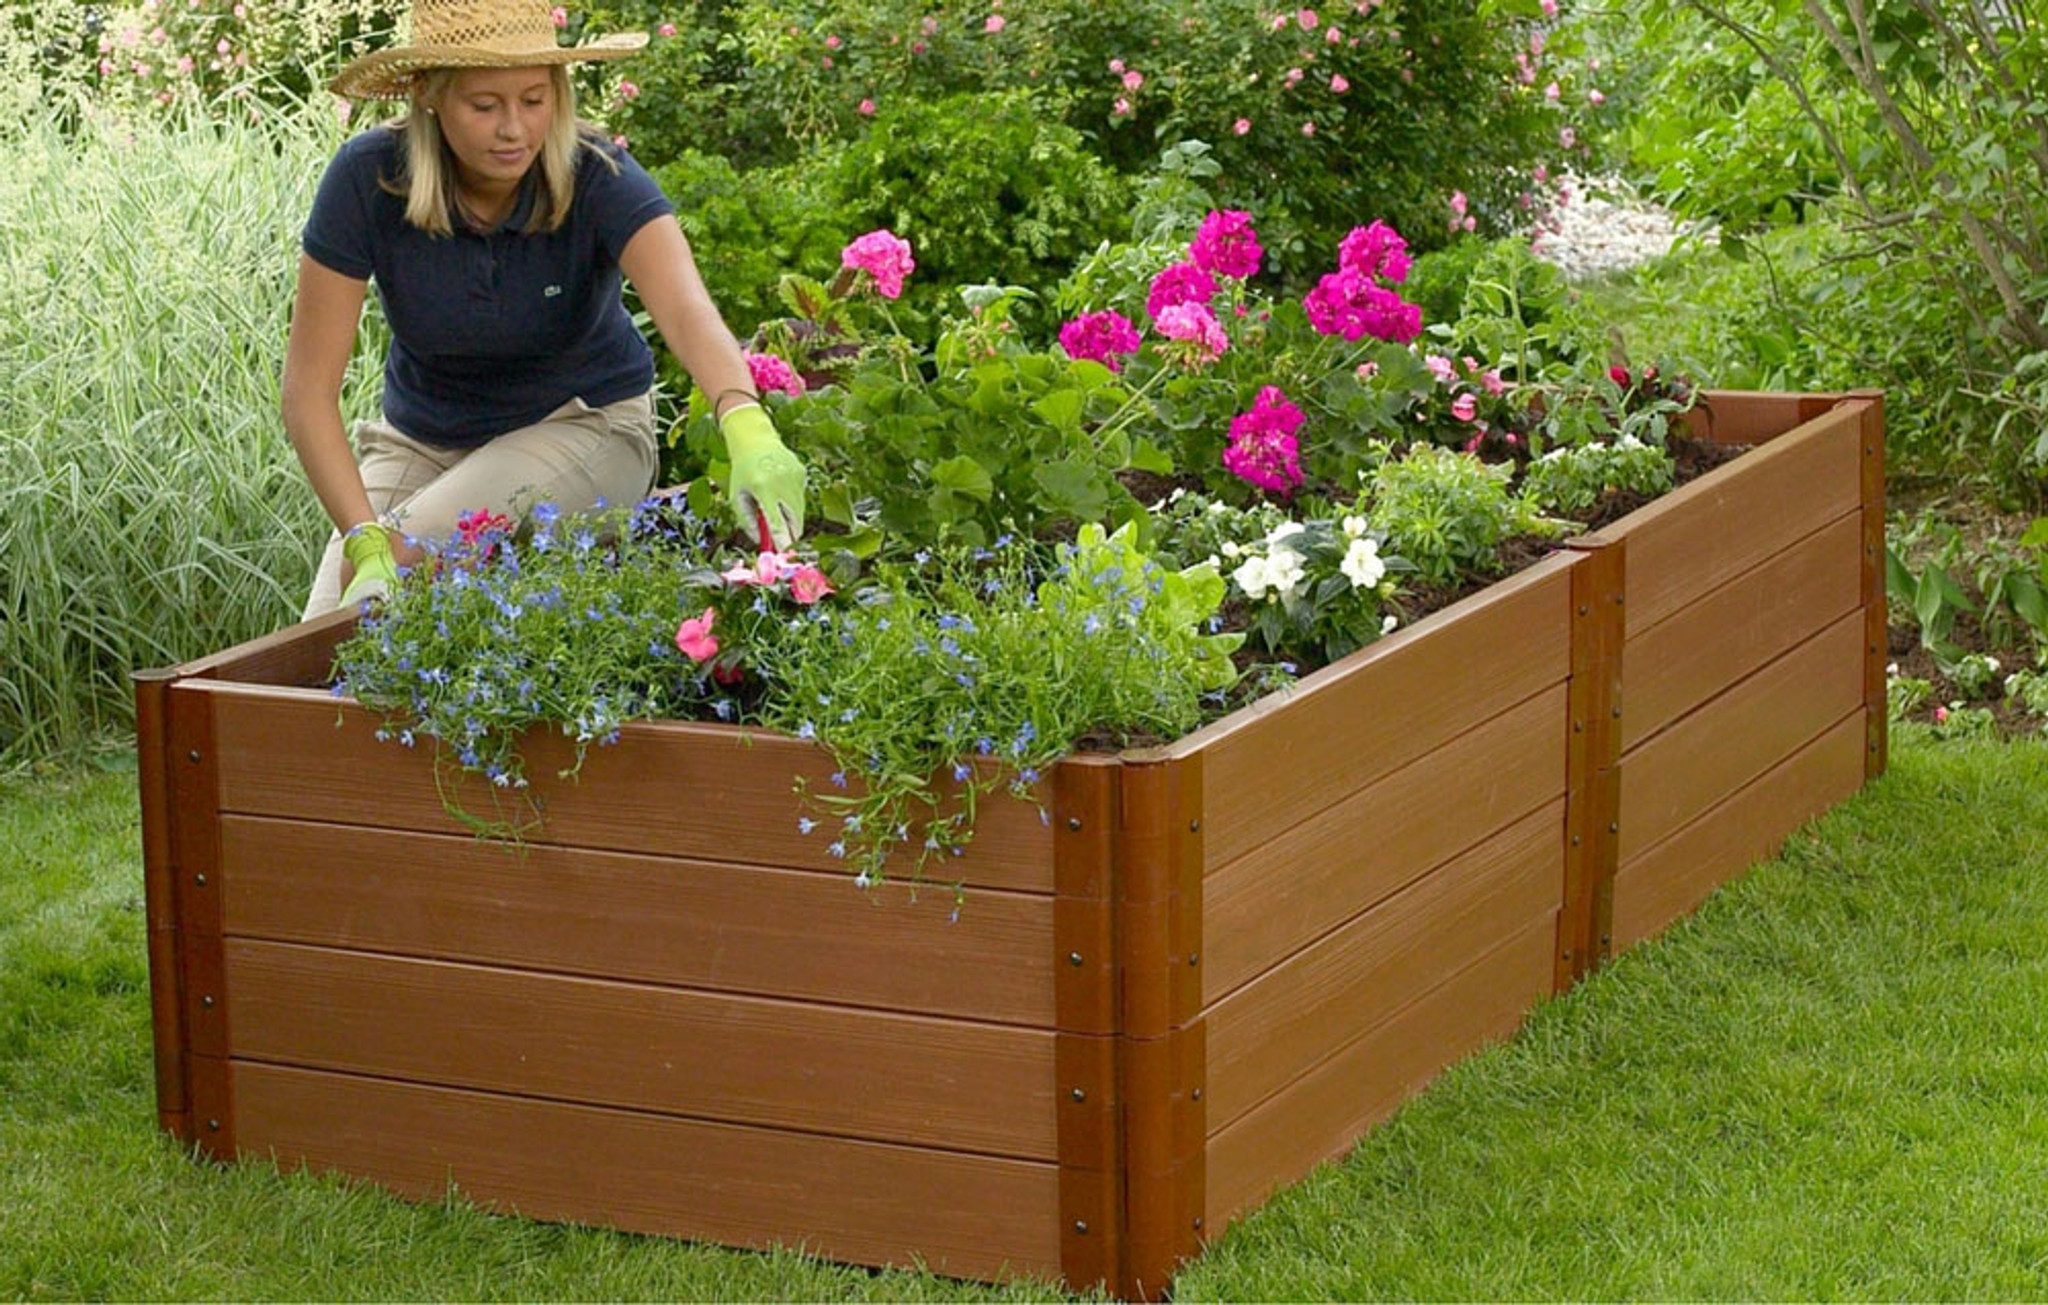 p sienna composite it kit in x inch brown all classic beds bed frame ft series raised two garden